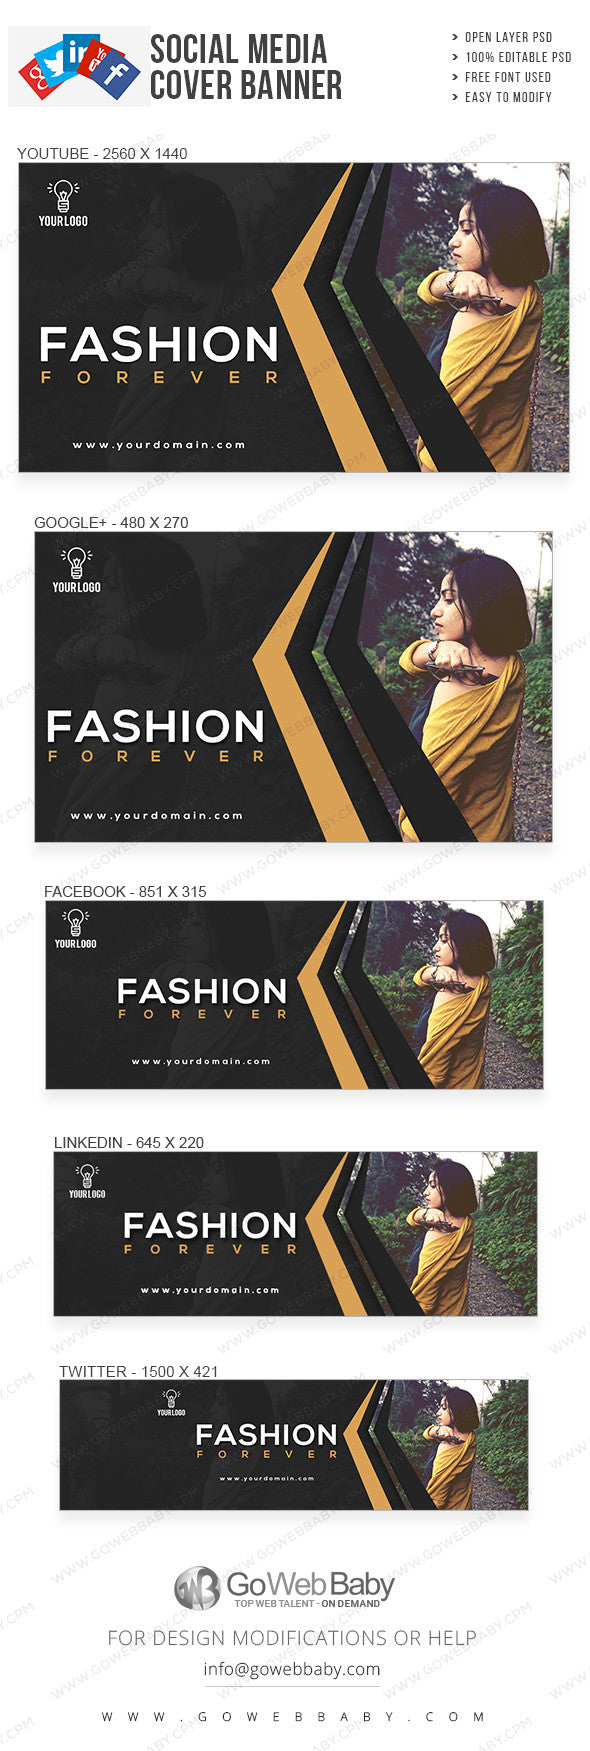 Latest Fashion Social Media Covers For Website Marketing